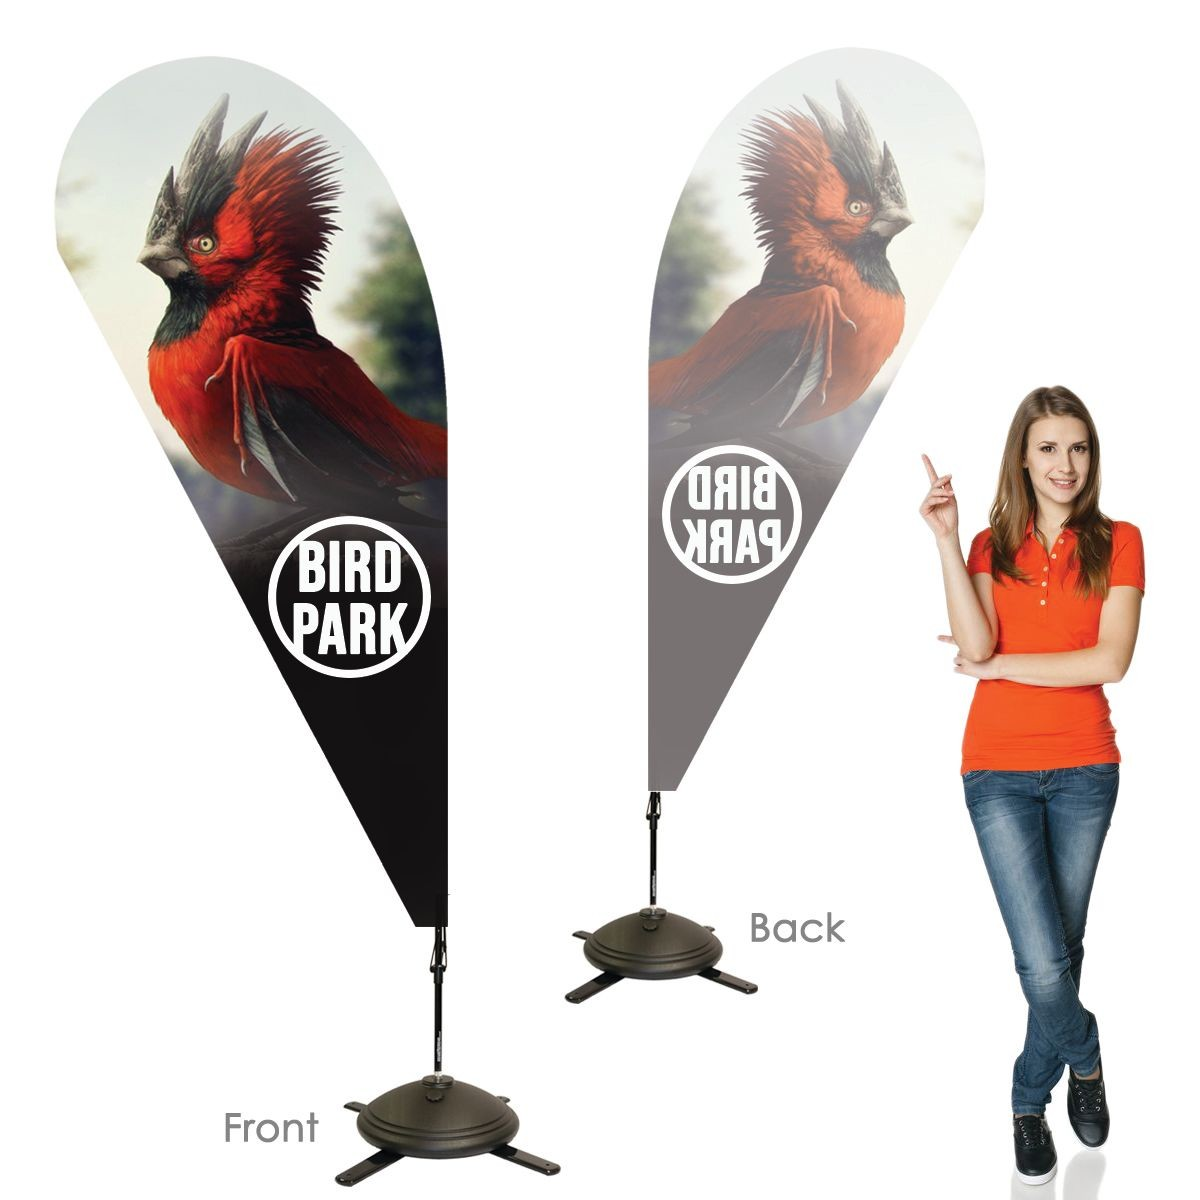 Single Sided Teardrop Banners with Left Facing Graphics